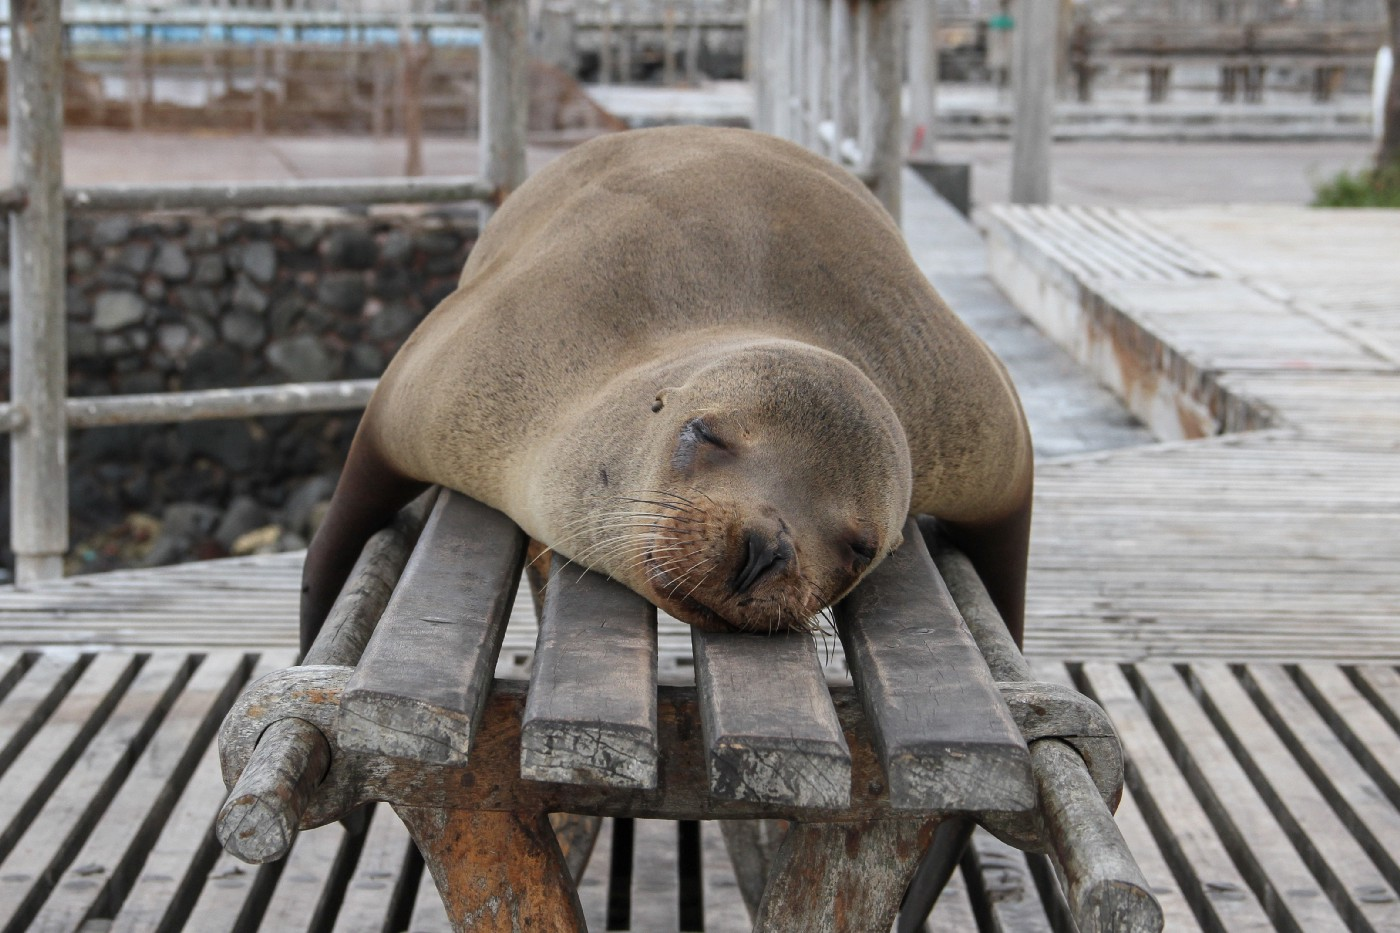 Grey seal sleeping on a wooden bench on a dock.